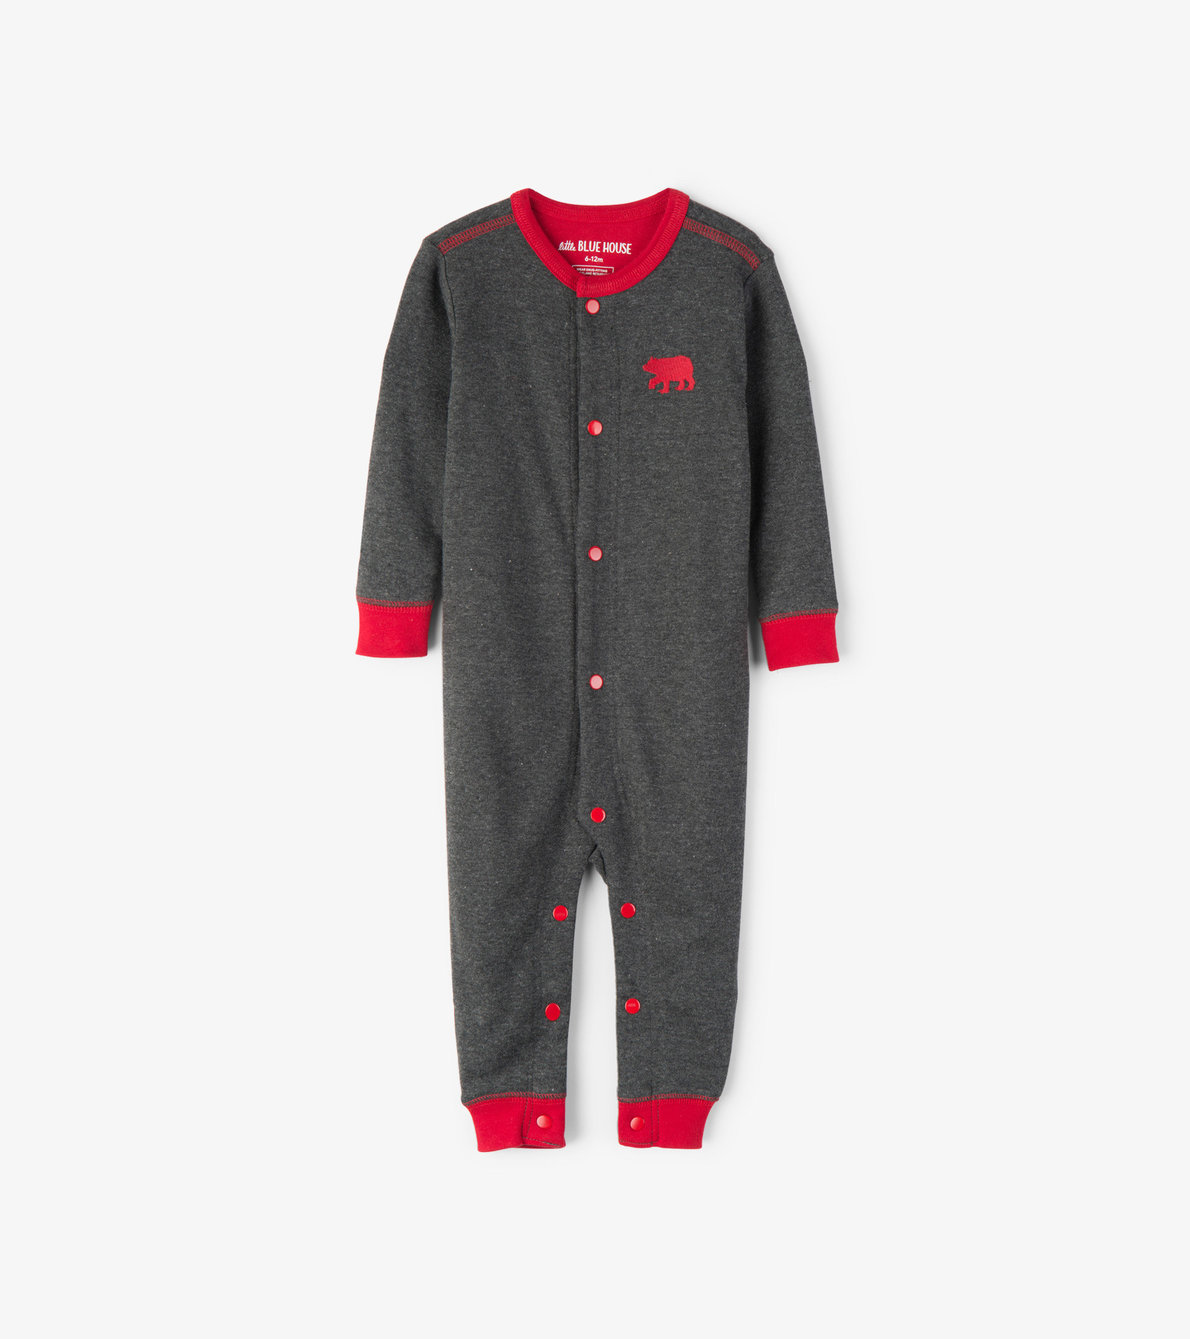 View larger image of Charcoal Bear Naked Baby Union Suit